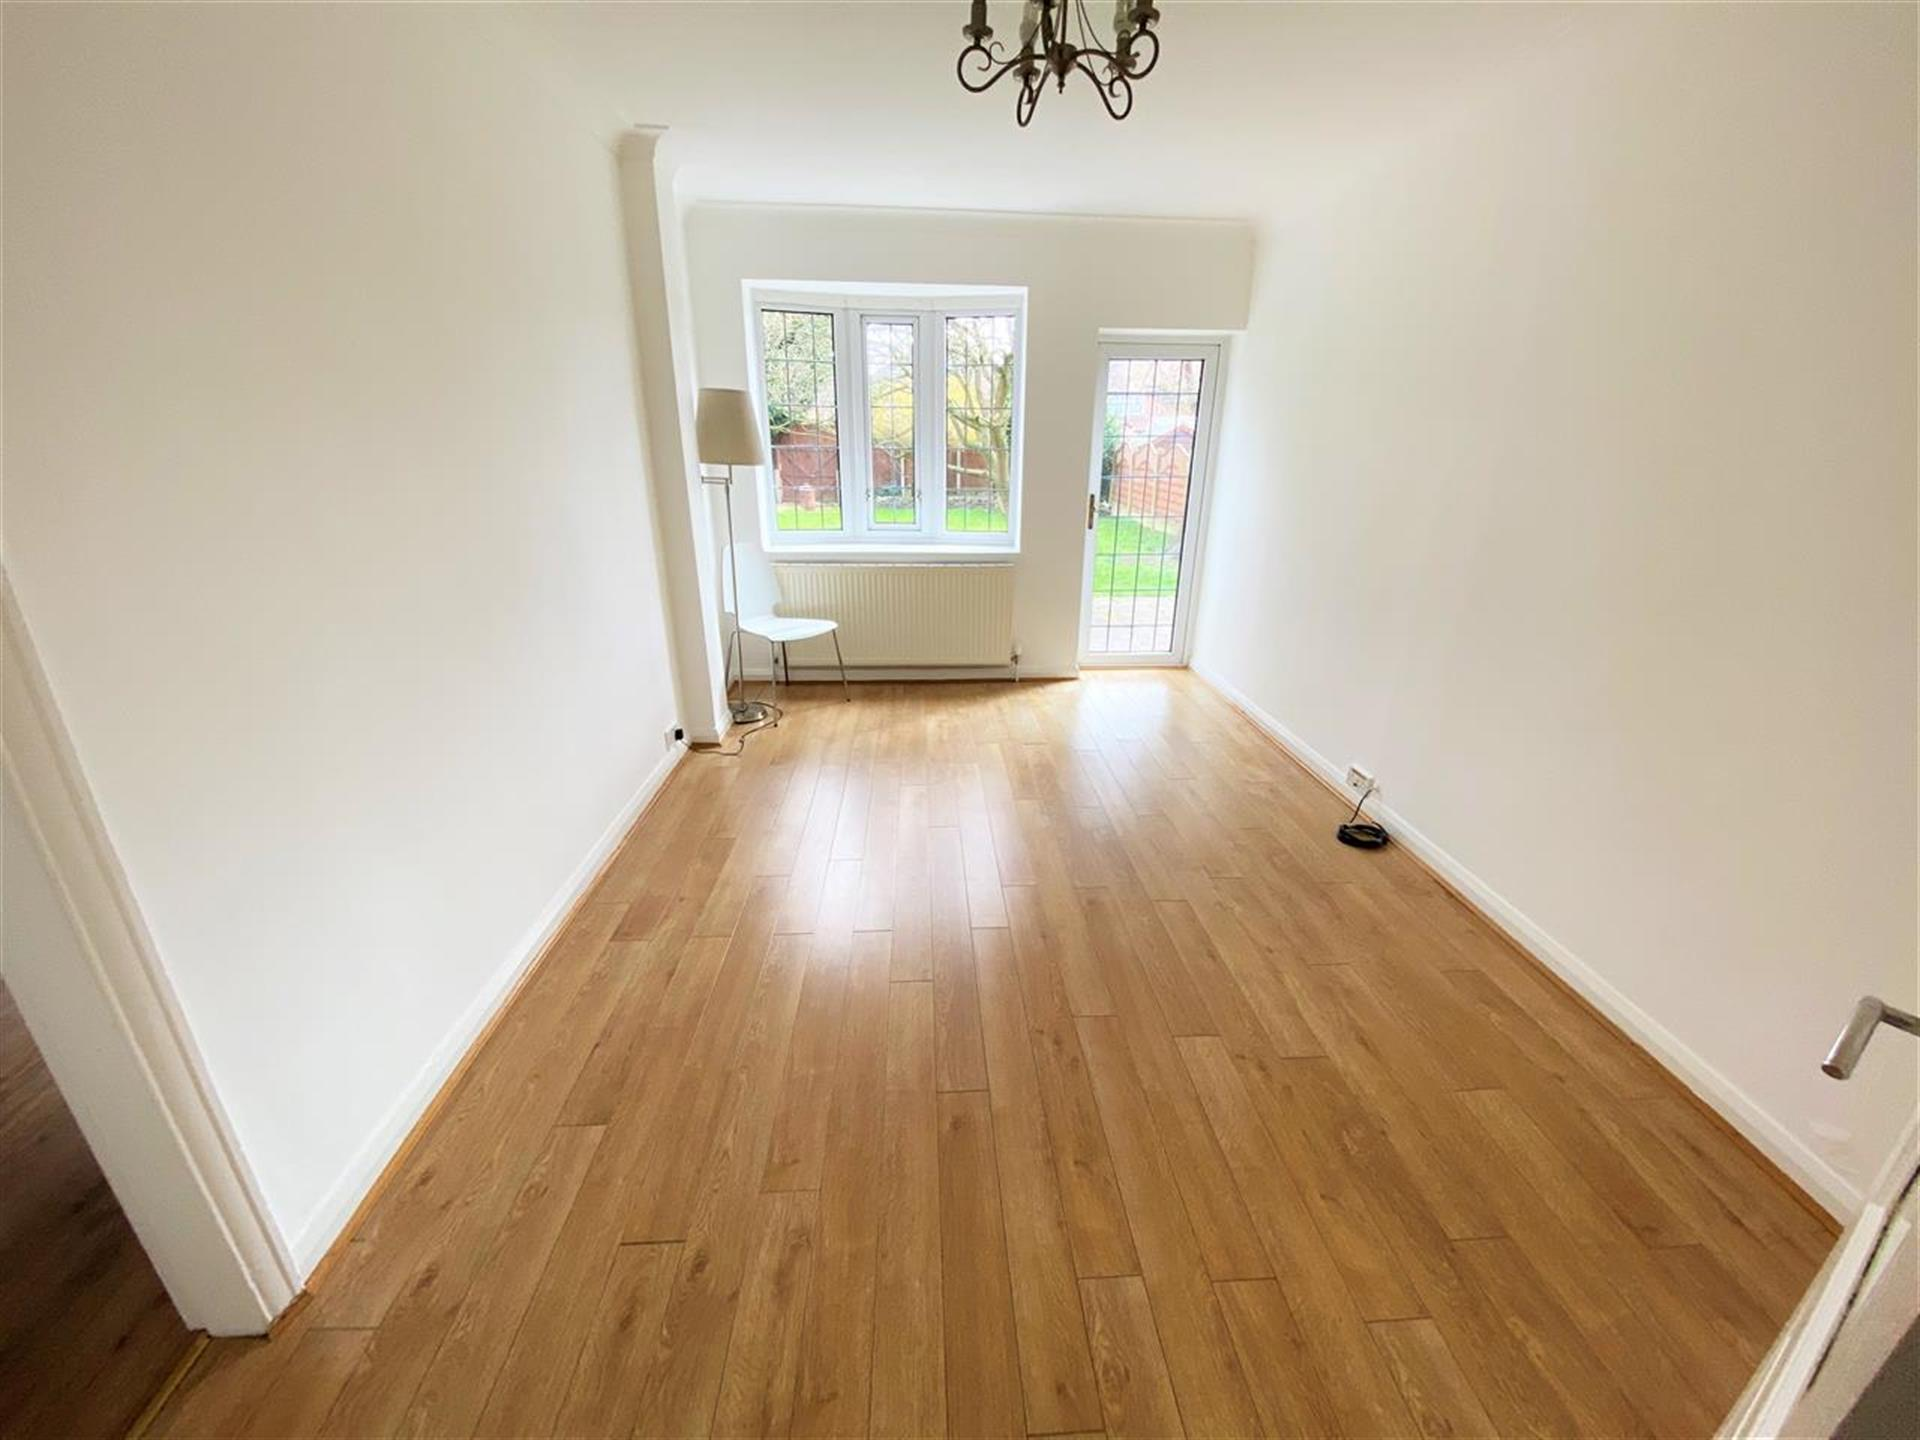 3 Bedroom Semi-detached House For Sale - Reception Room Two